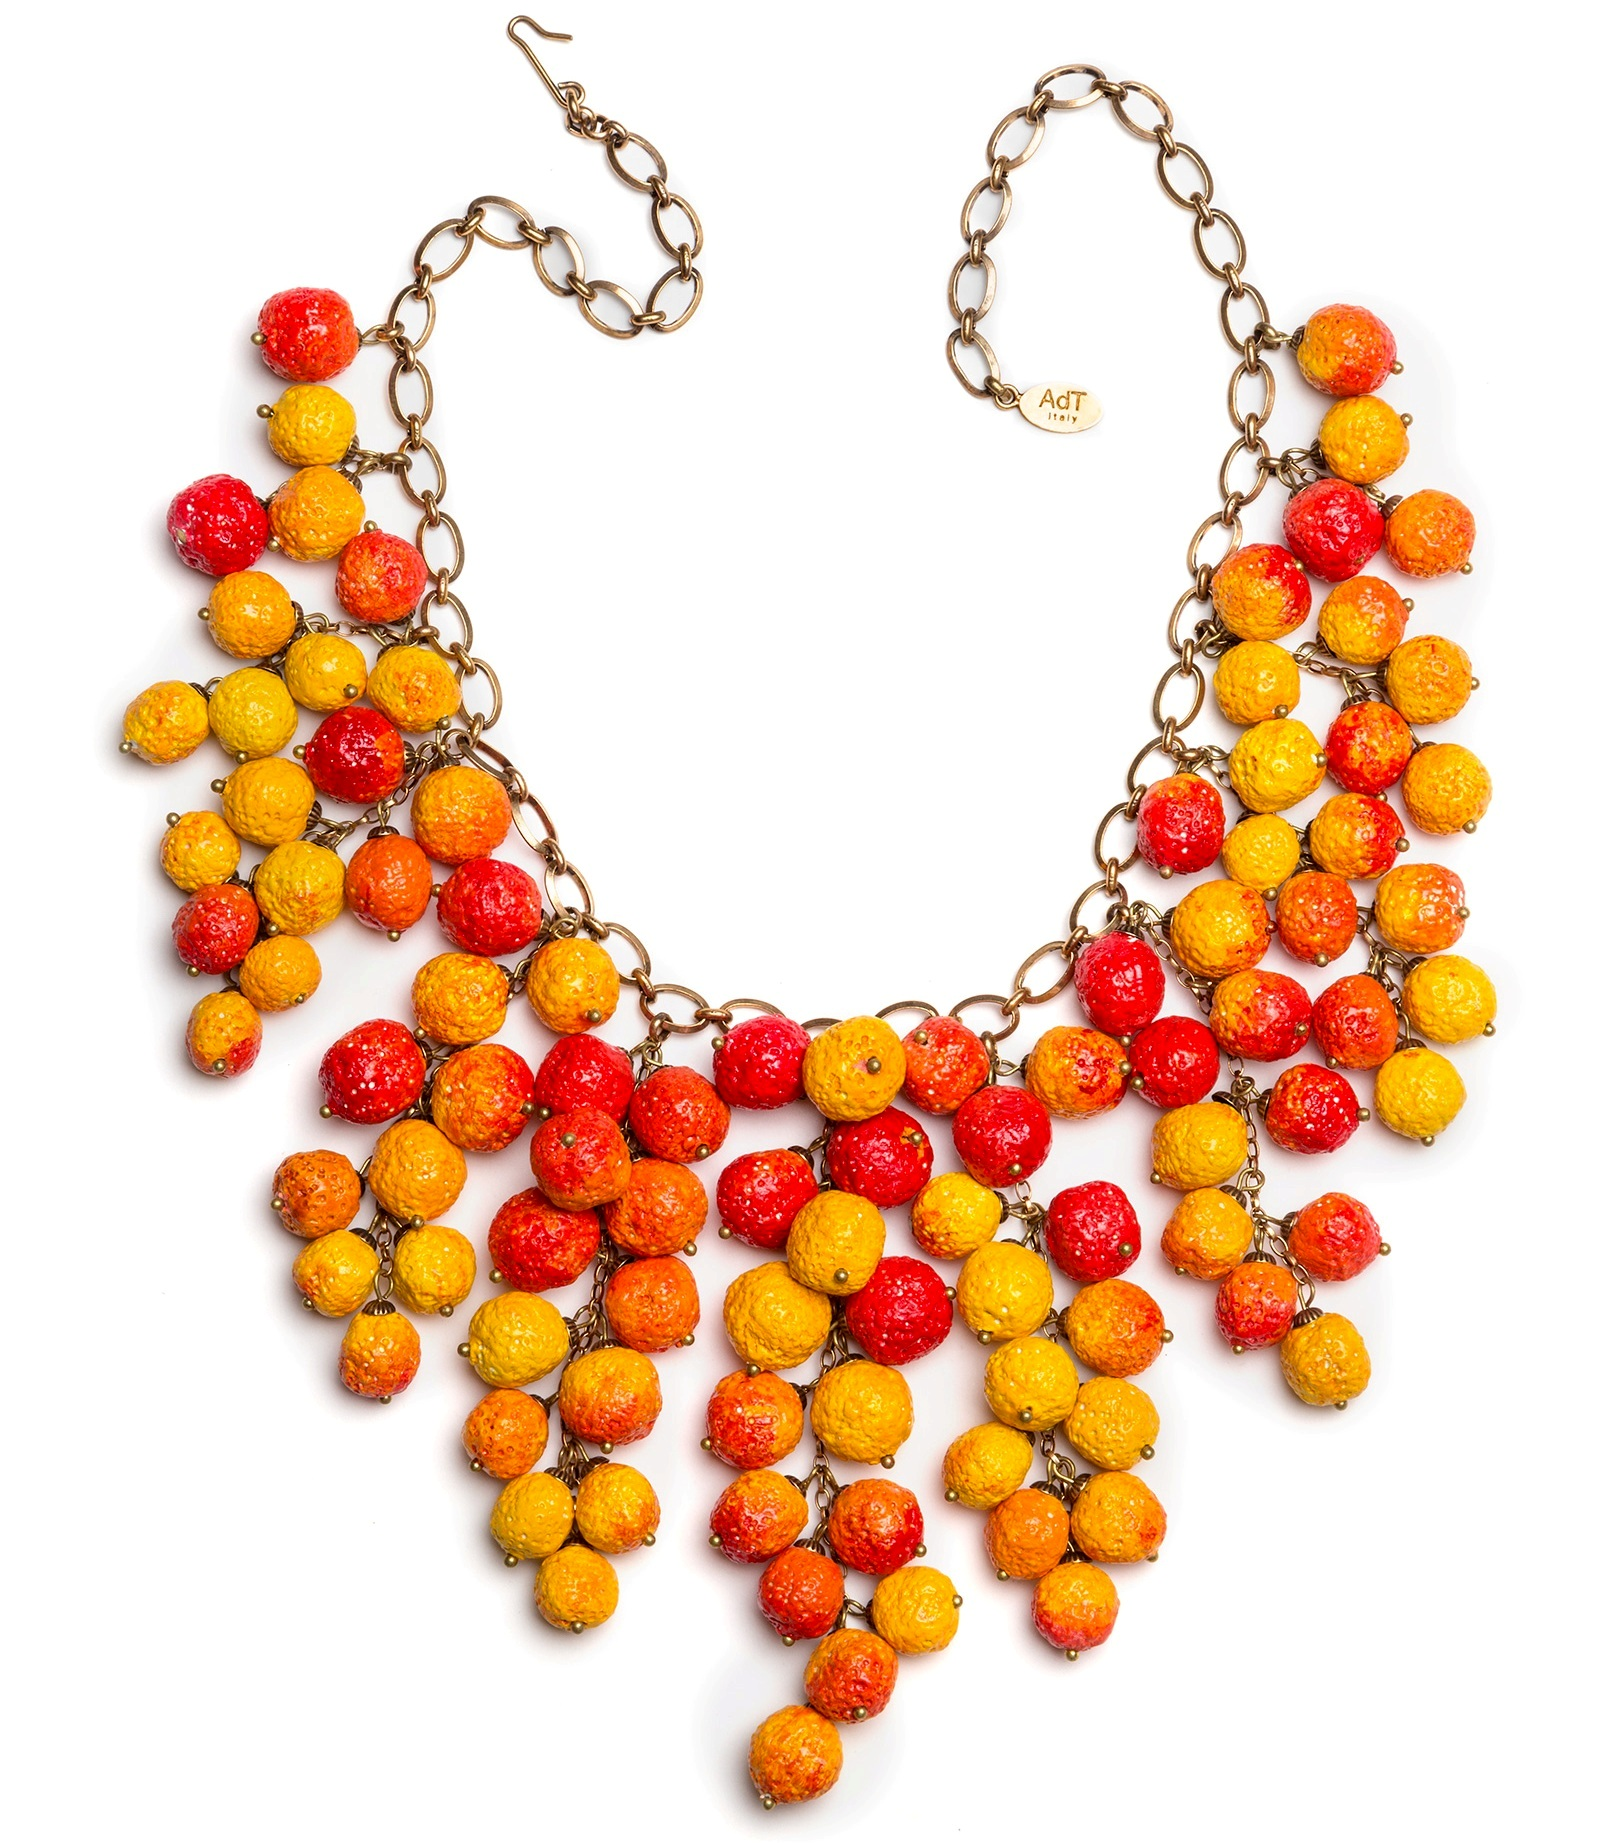 arbutus necklace